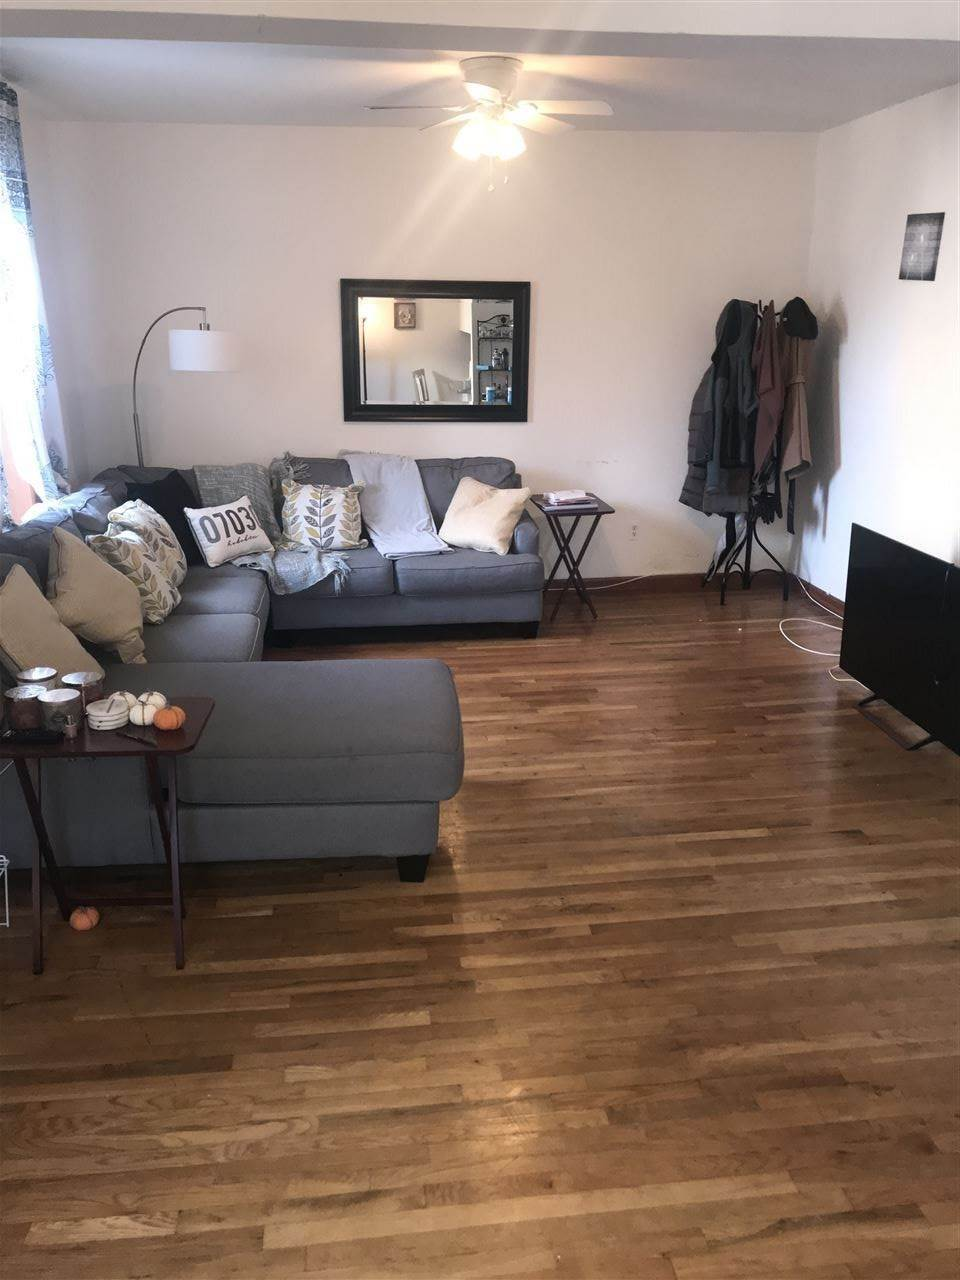 Residential for Rent at 564 Observer Highway #2 Hoboken, New Jersey 07030 United States